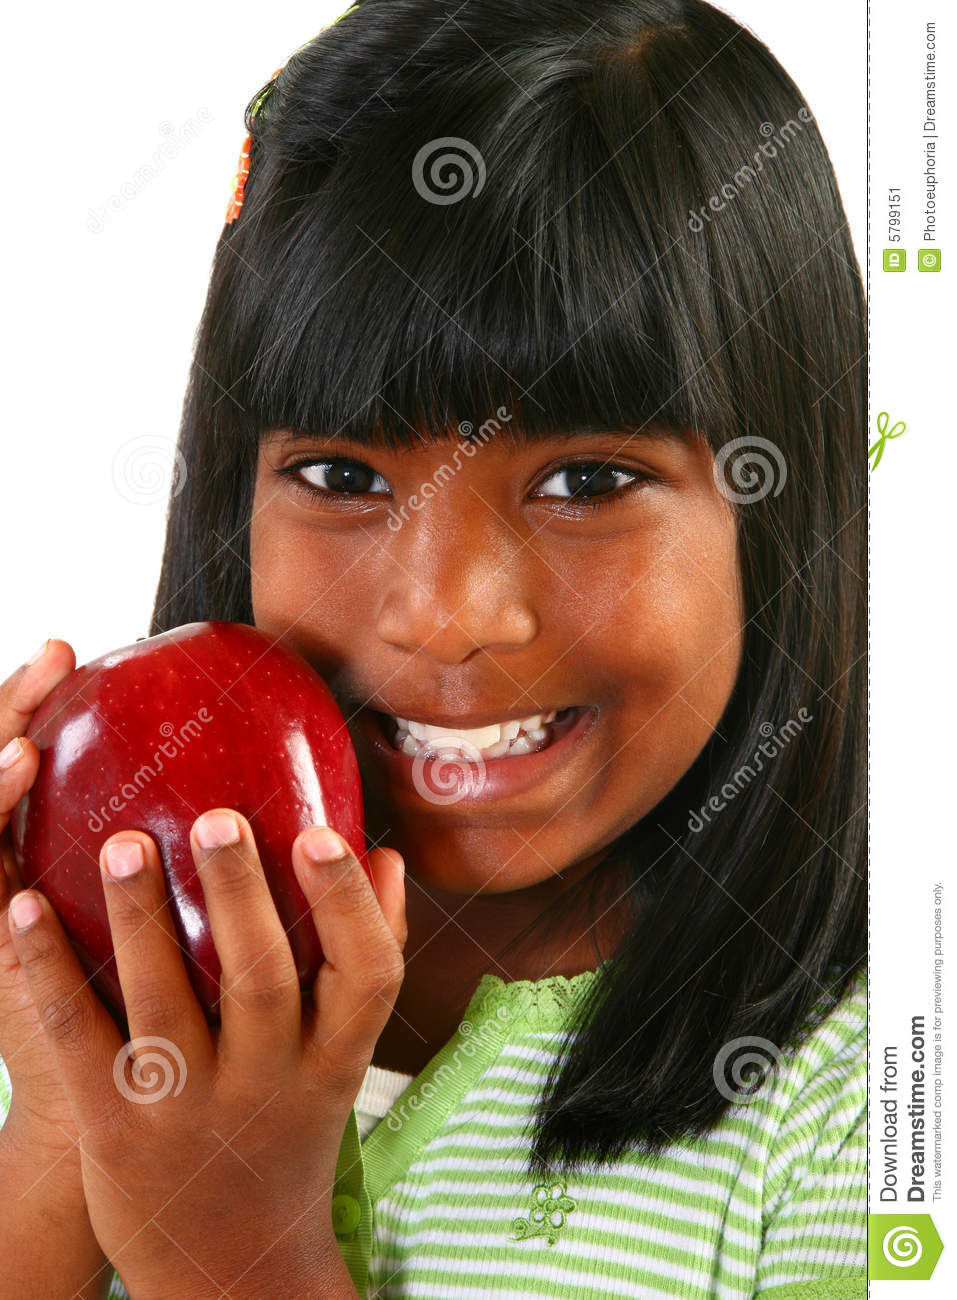 Muchacha india hermosa con Apple